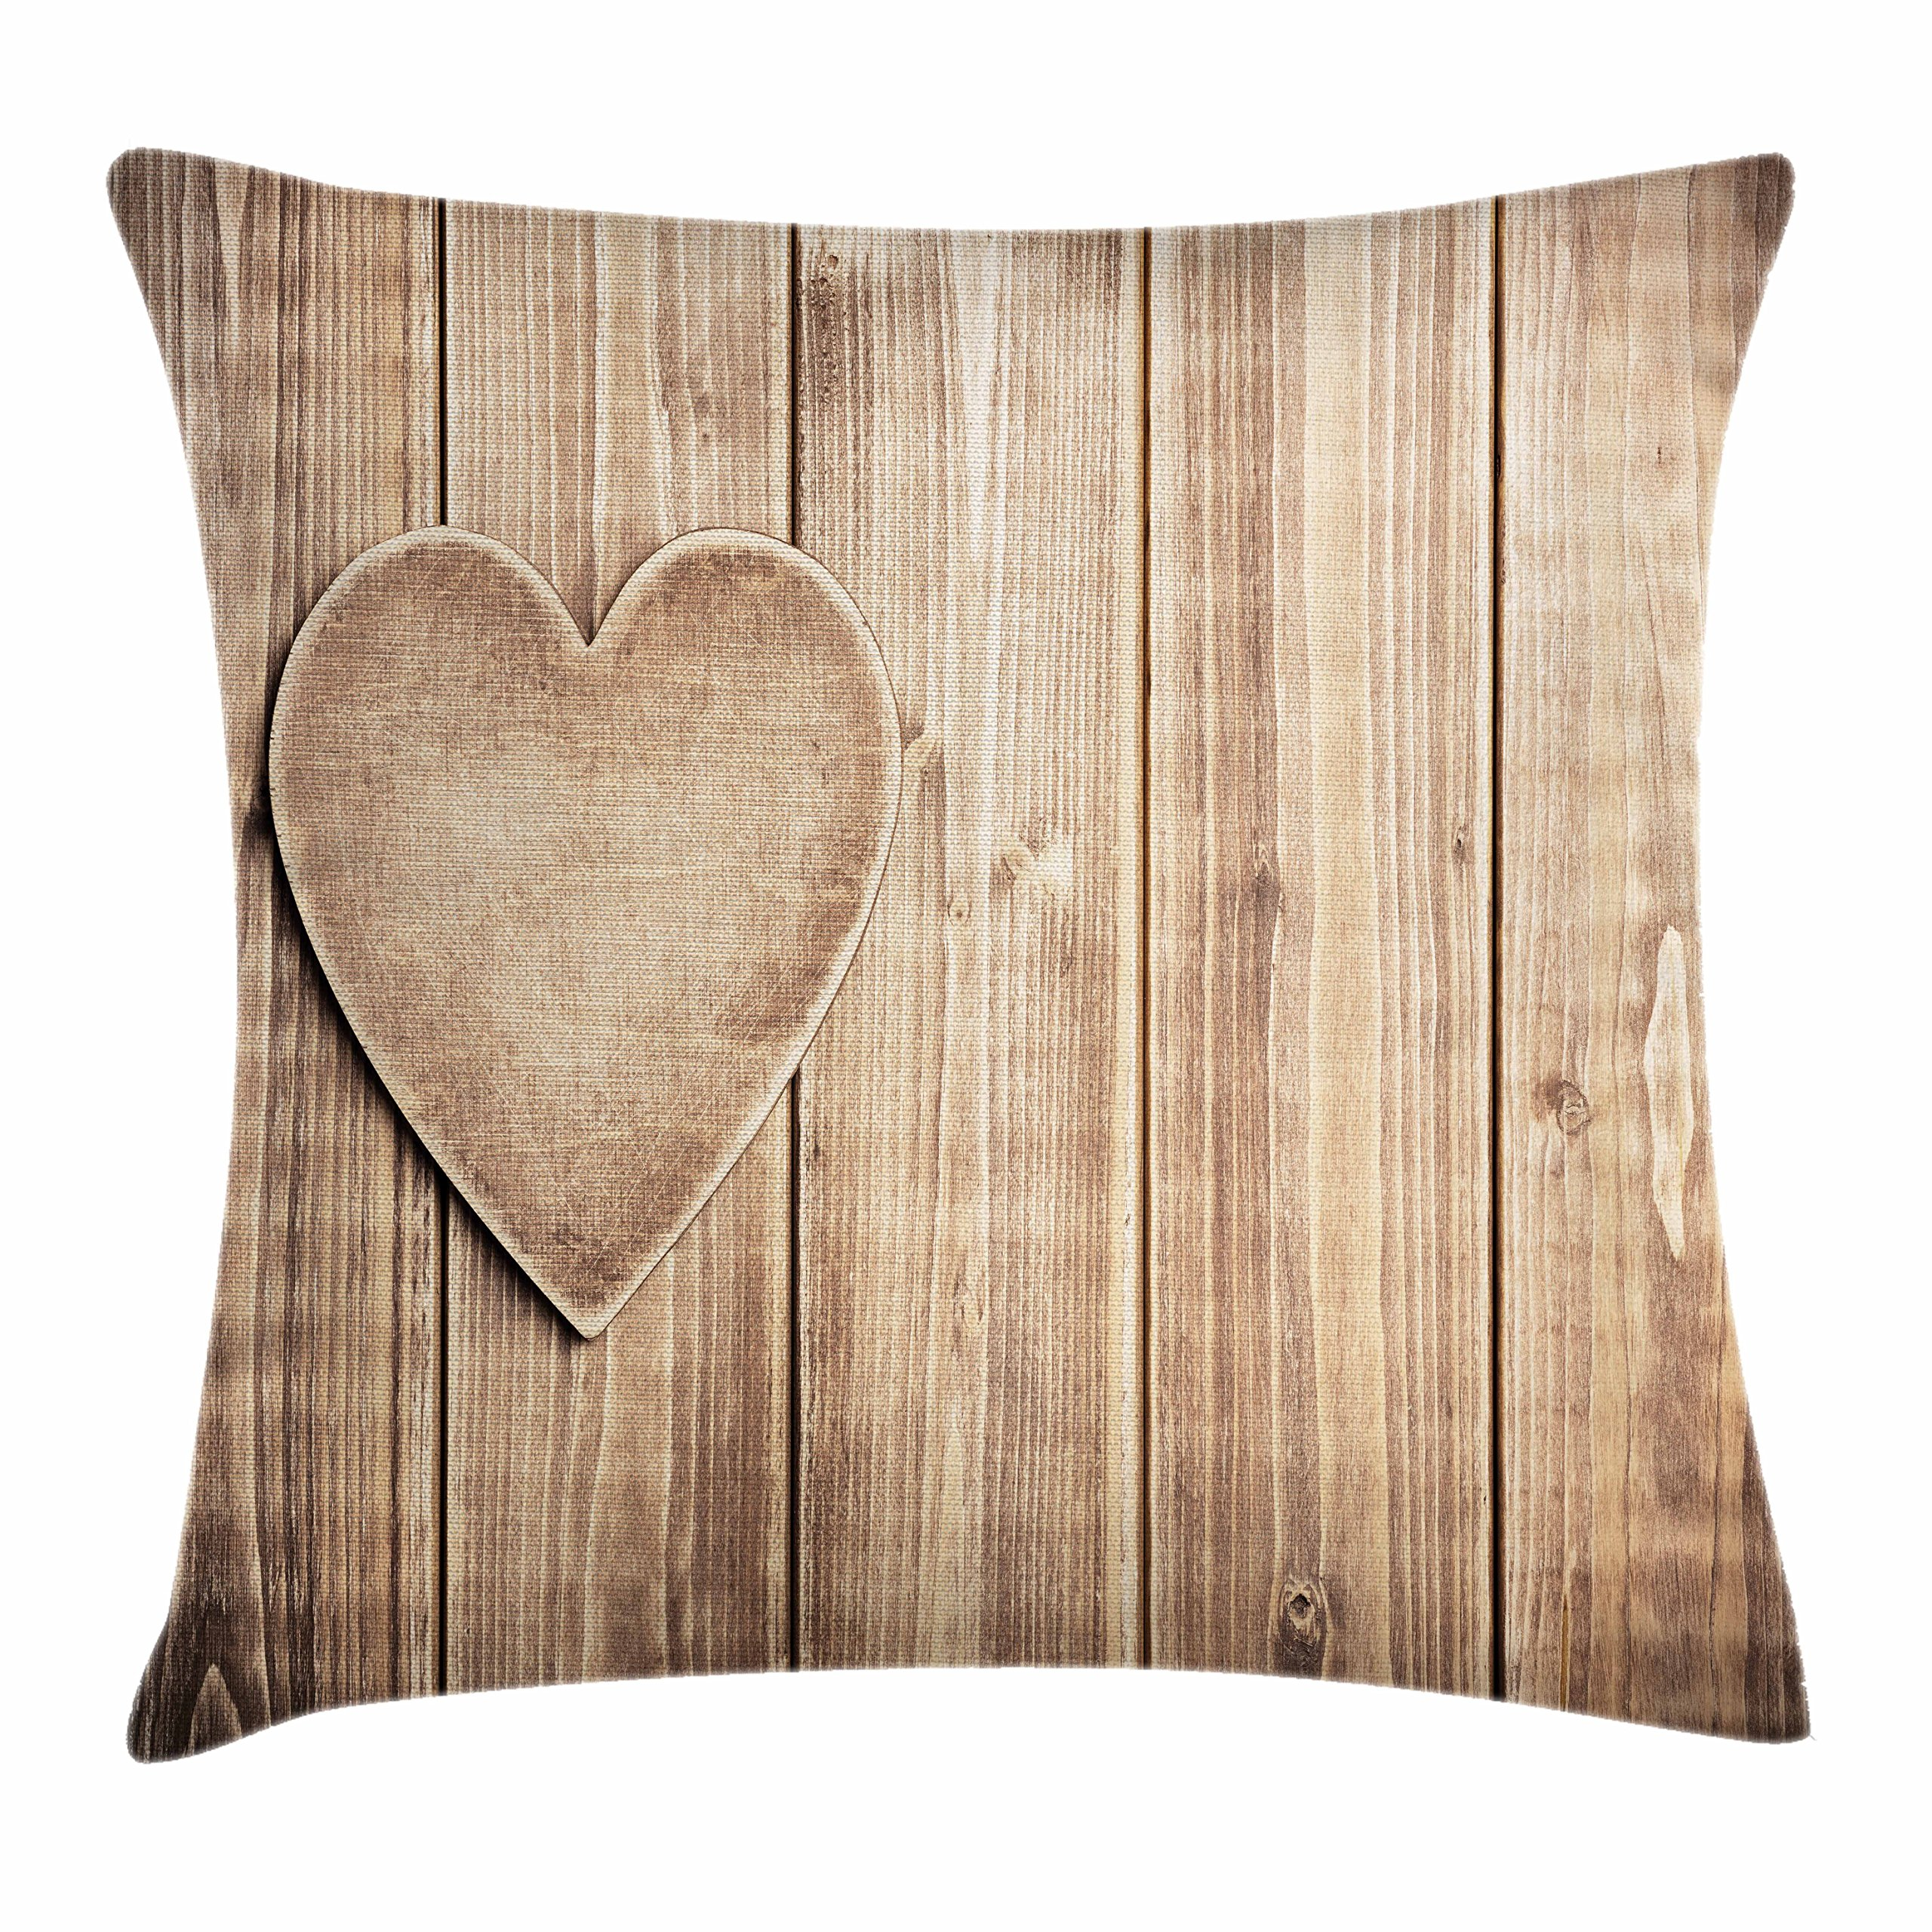 Ambesonne Valentines Day Throw Pillow Cushion Cover, Rustic Heart Over Wooden Planks Background Lovers Corner Romantic Celebration Print, Decorative Square Accent Pillow Case, 18 X 18 Inches, Tan